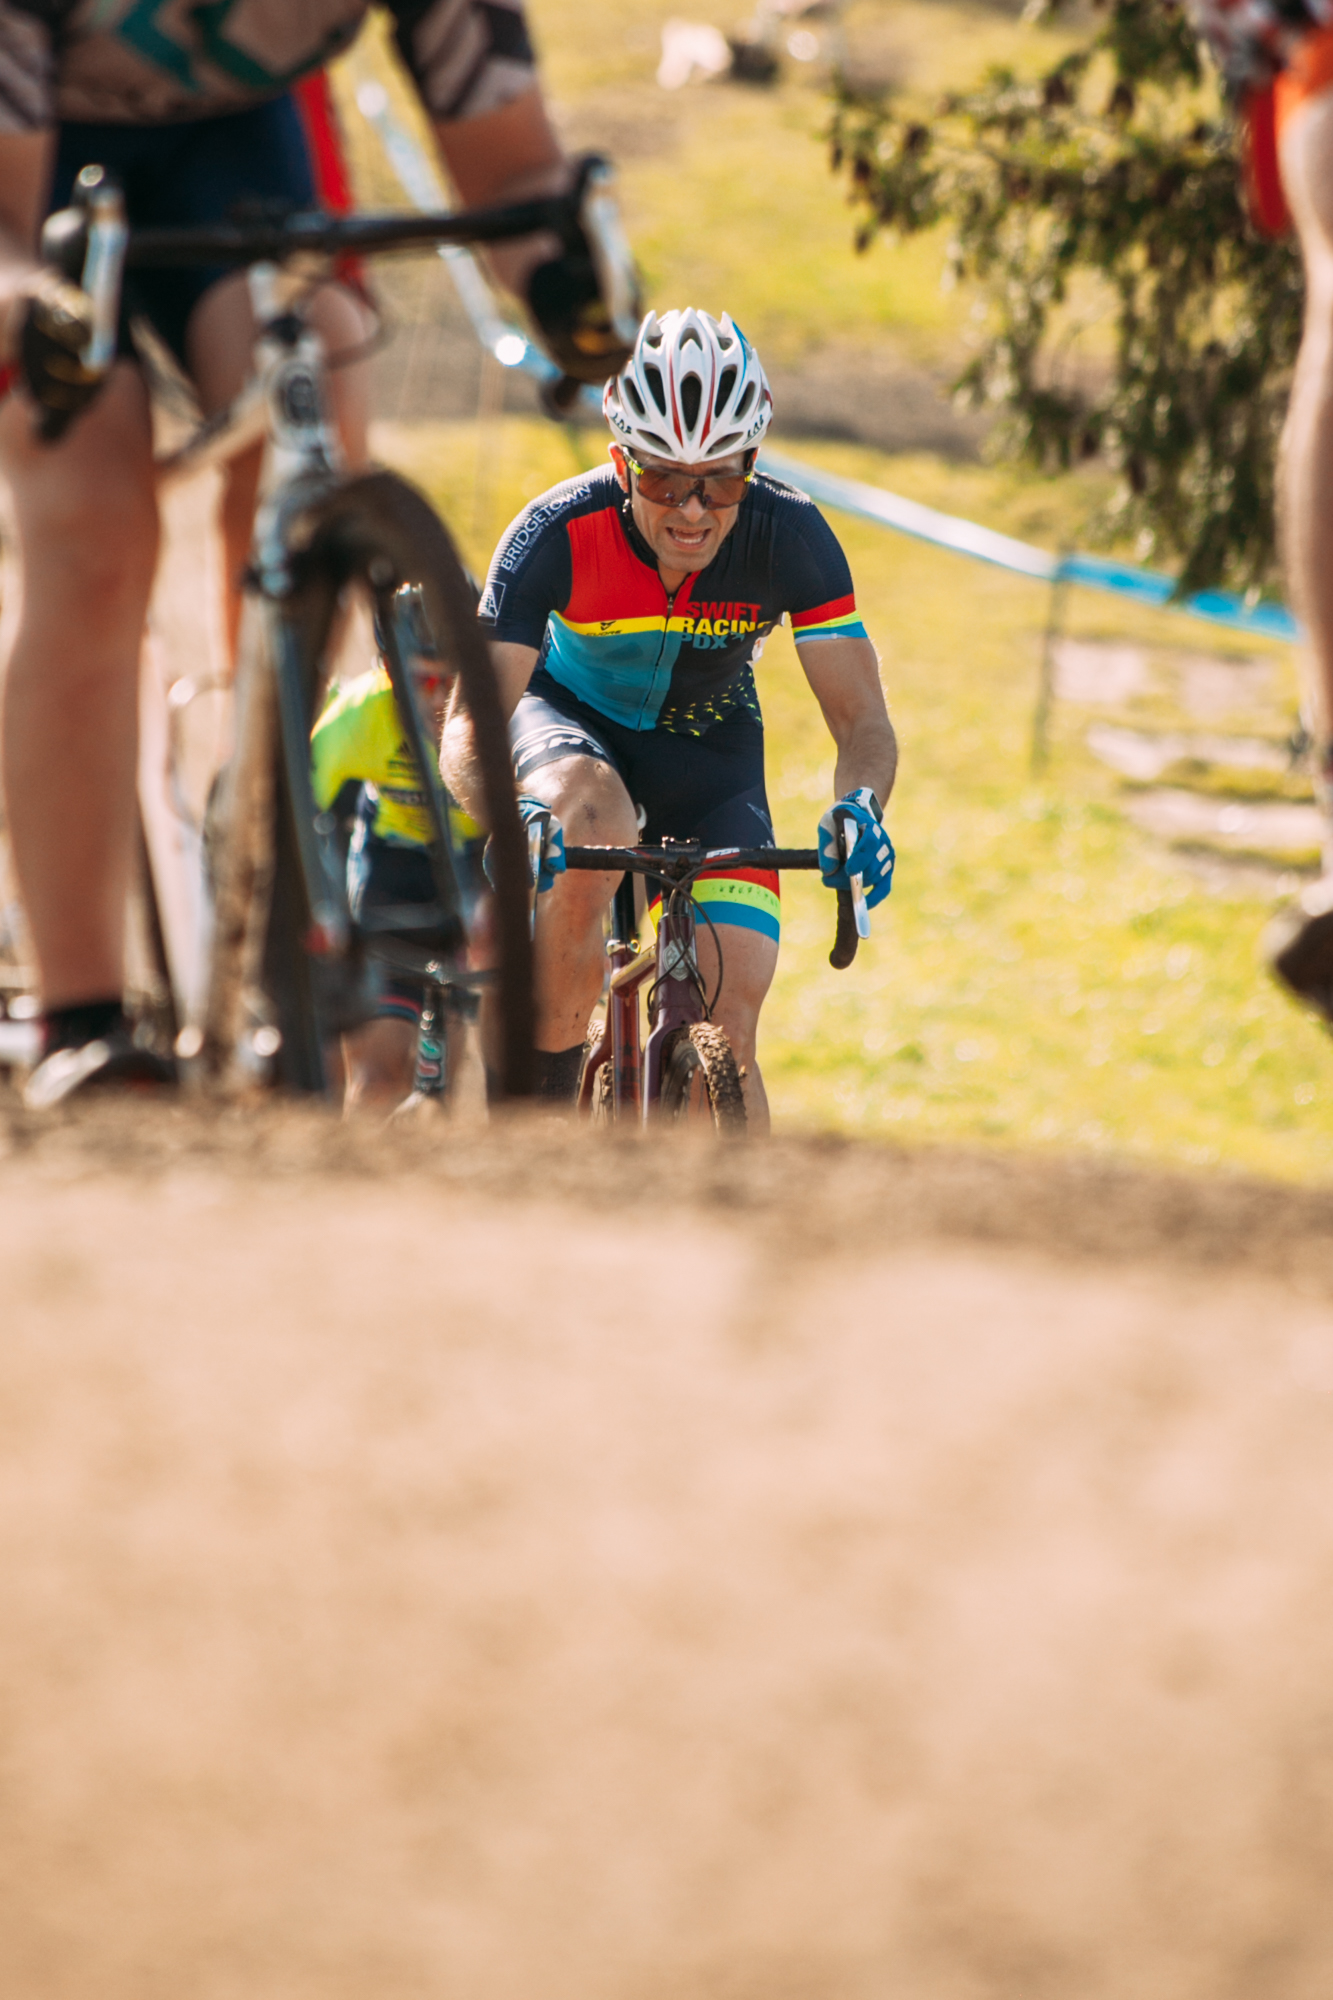 Cyclocross18_CCCX_RainierHS-209-mettlecycling.jpg